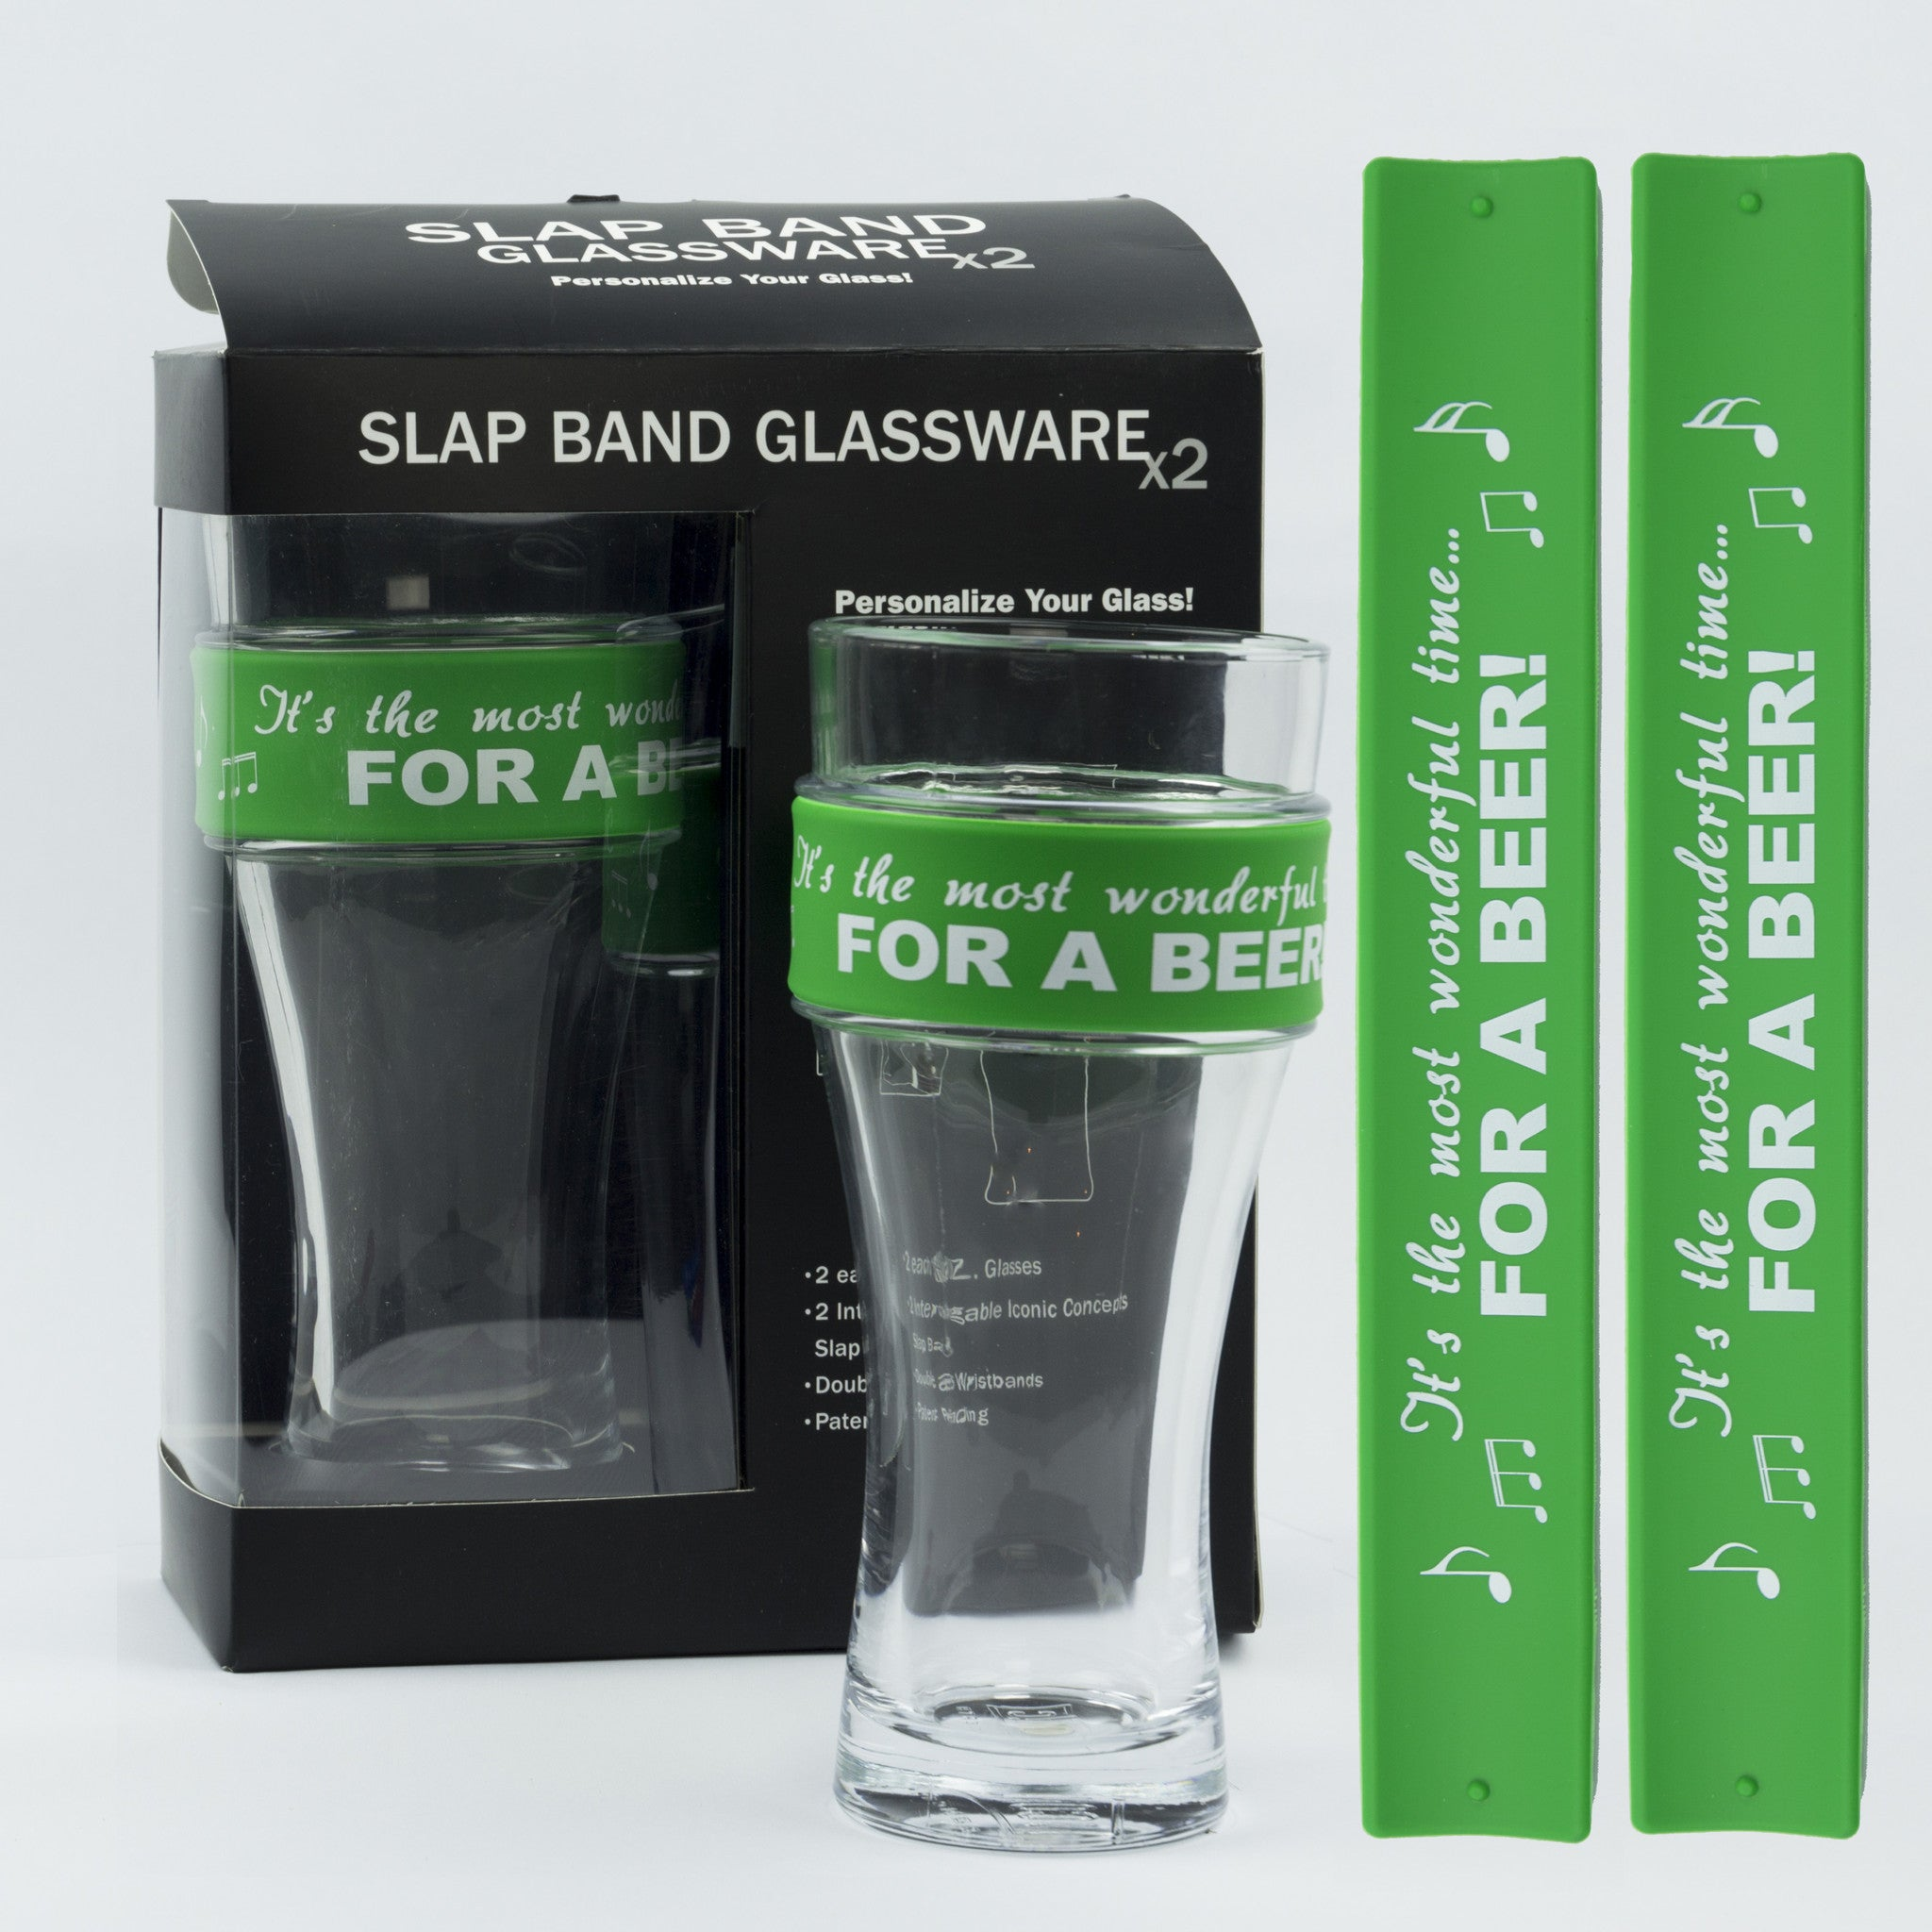 Holidays Slap Band Glassware - It's the Most Wonderful Time For A Beer